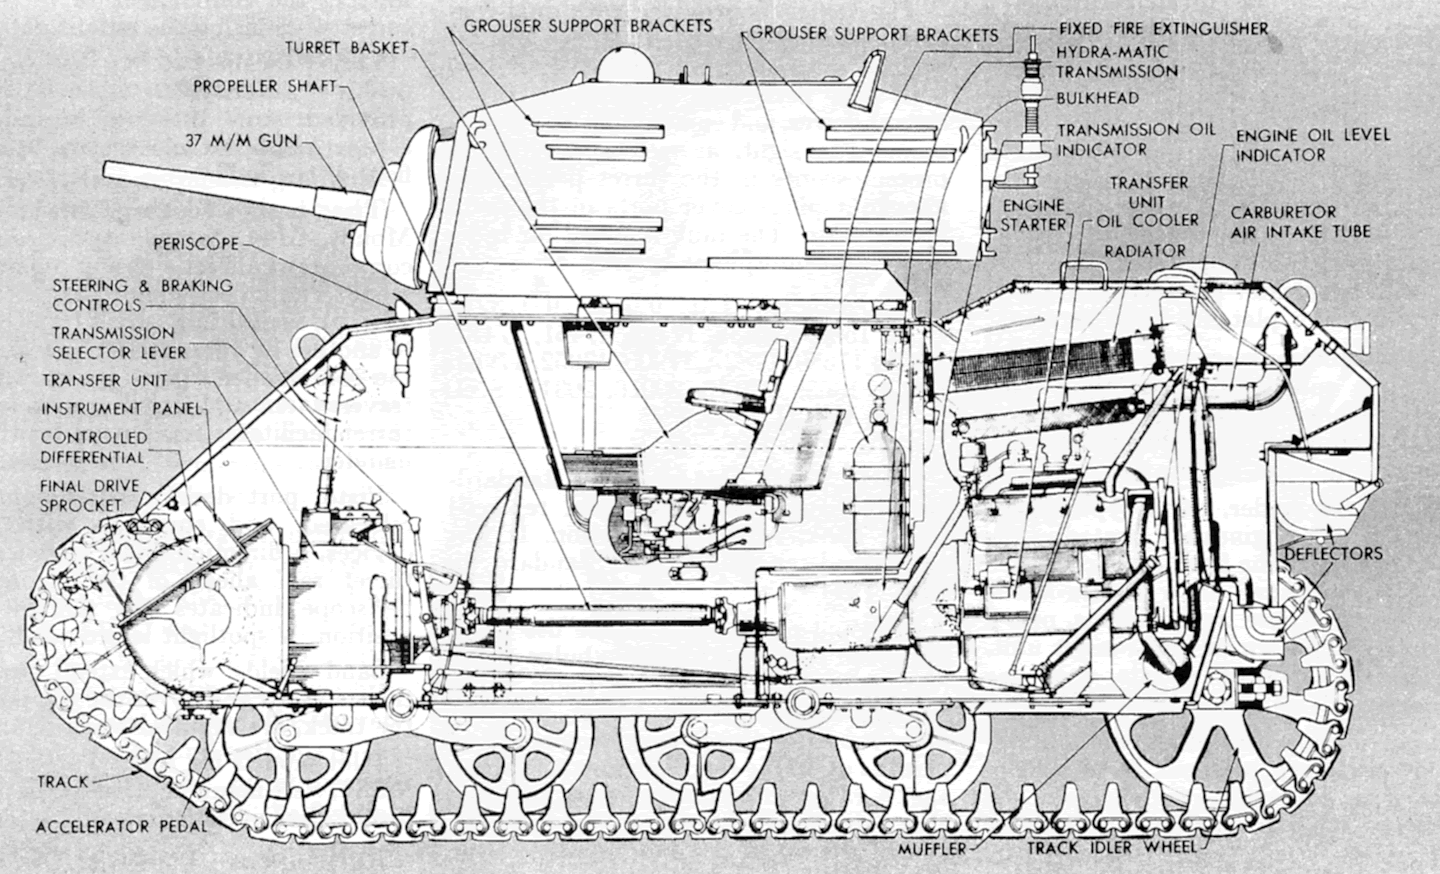 small resolution of m5a1 light tank drawing 02 png 1440 874